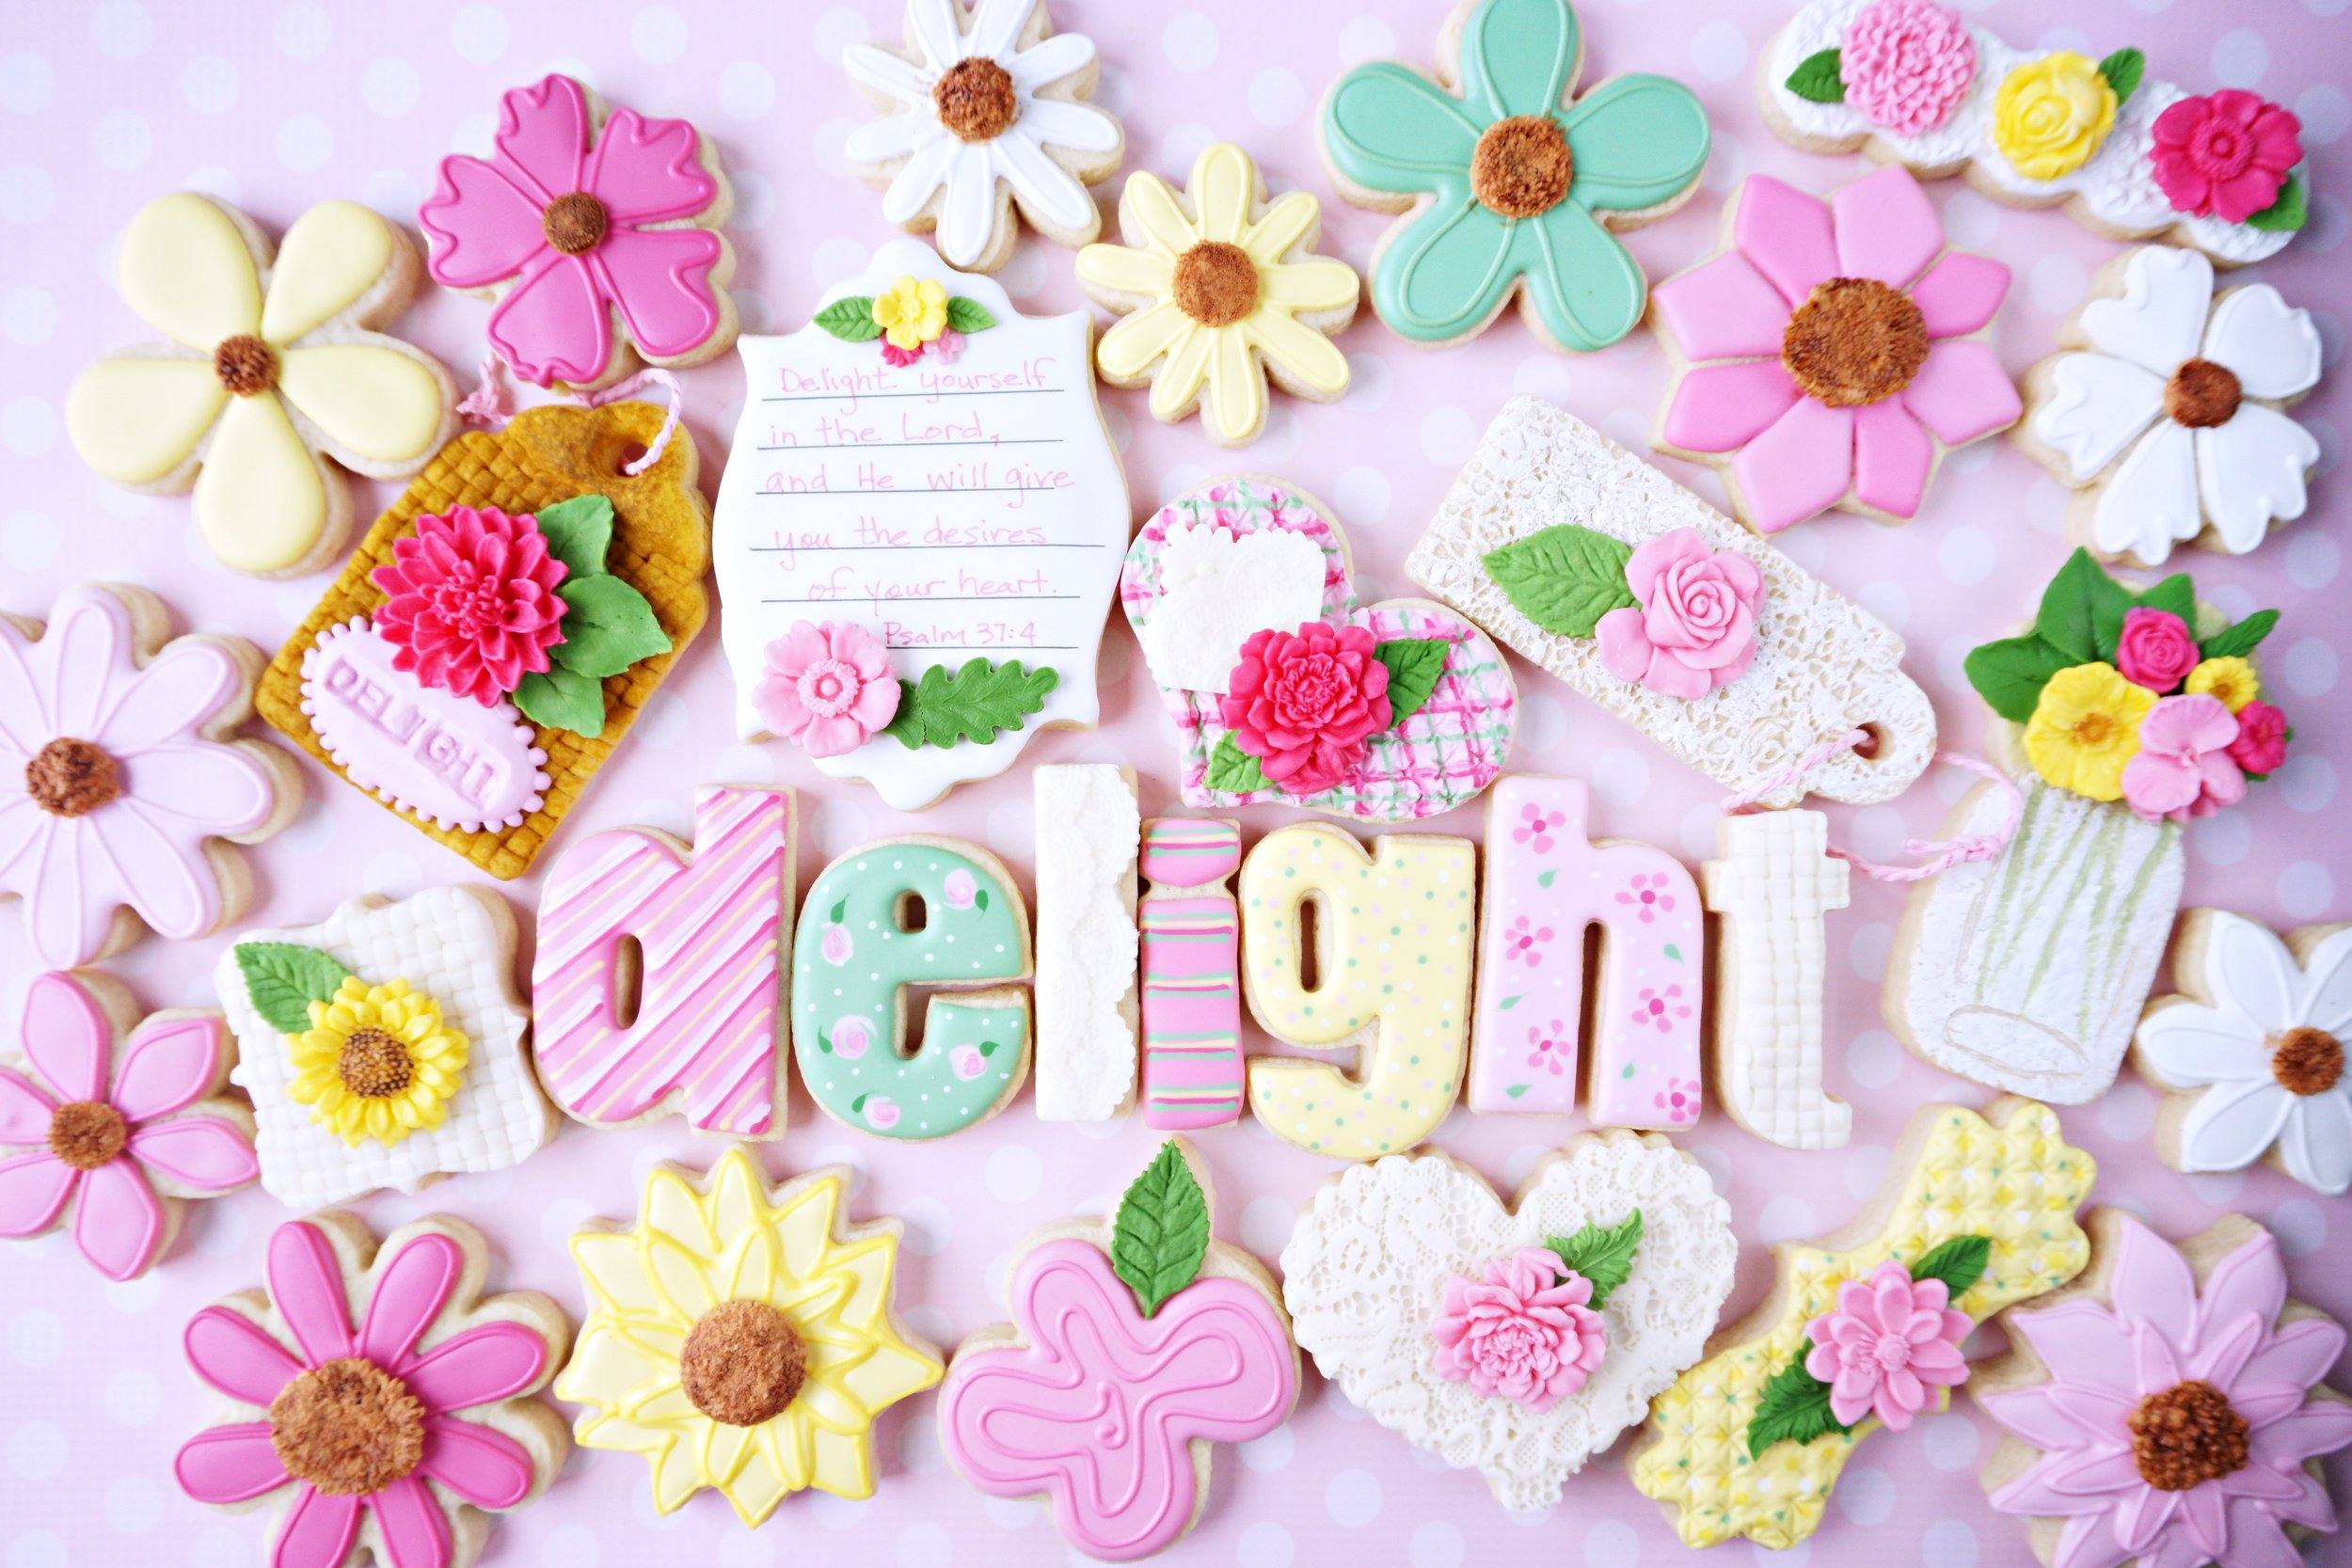 Flower Delight Decorated Cookie Collection